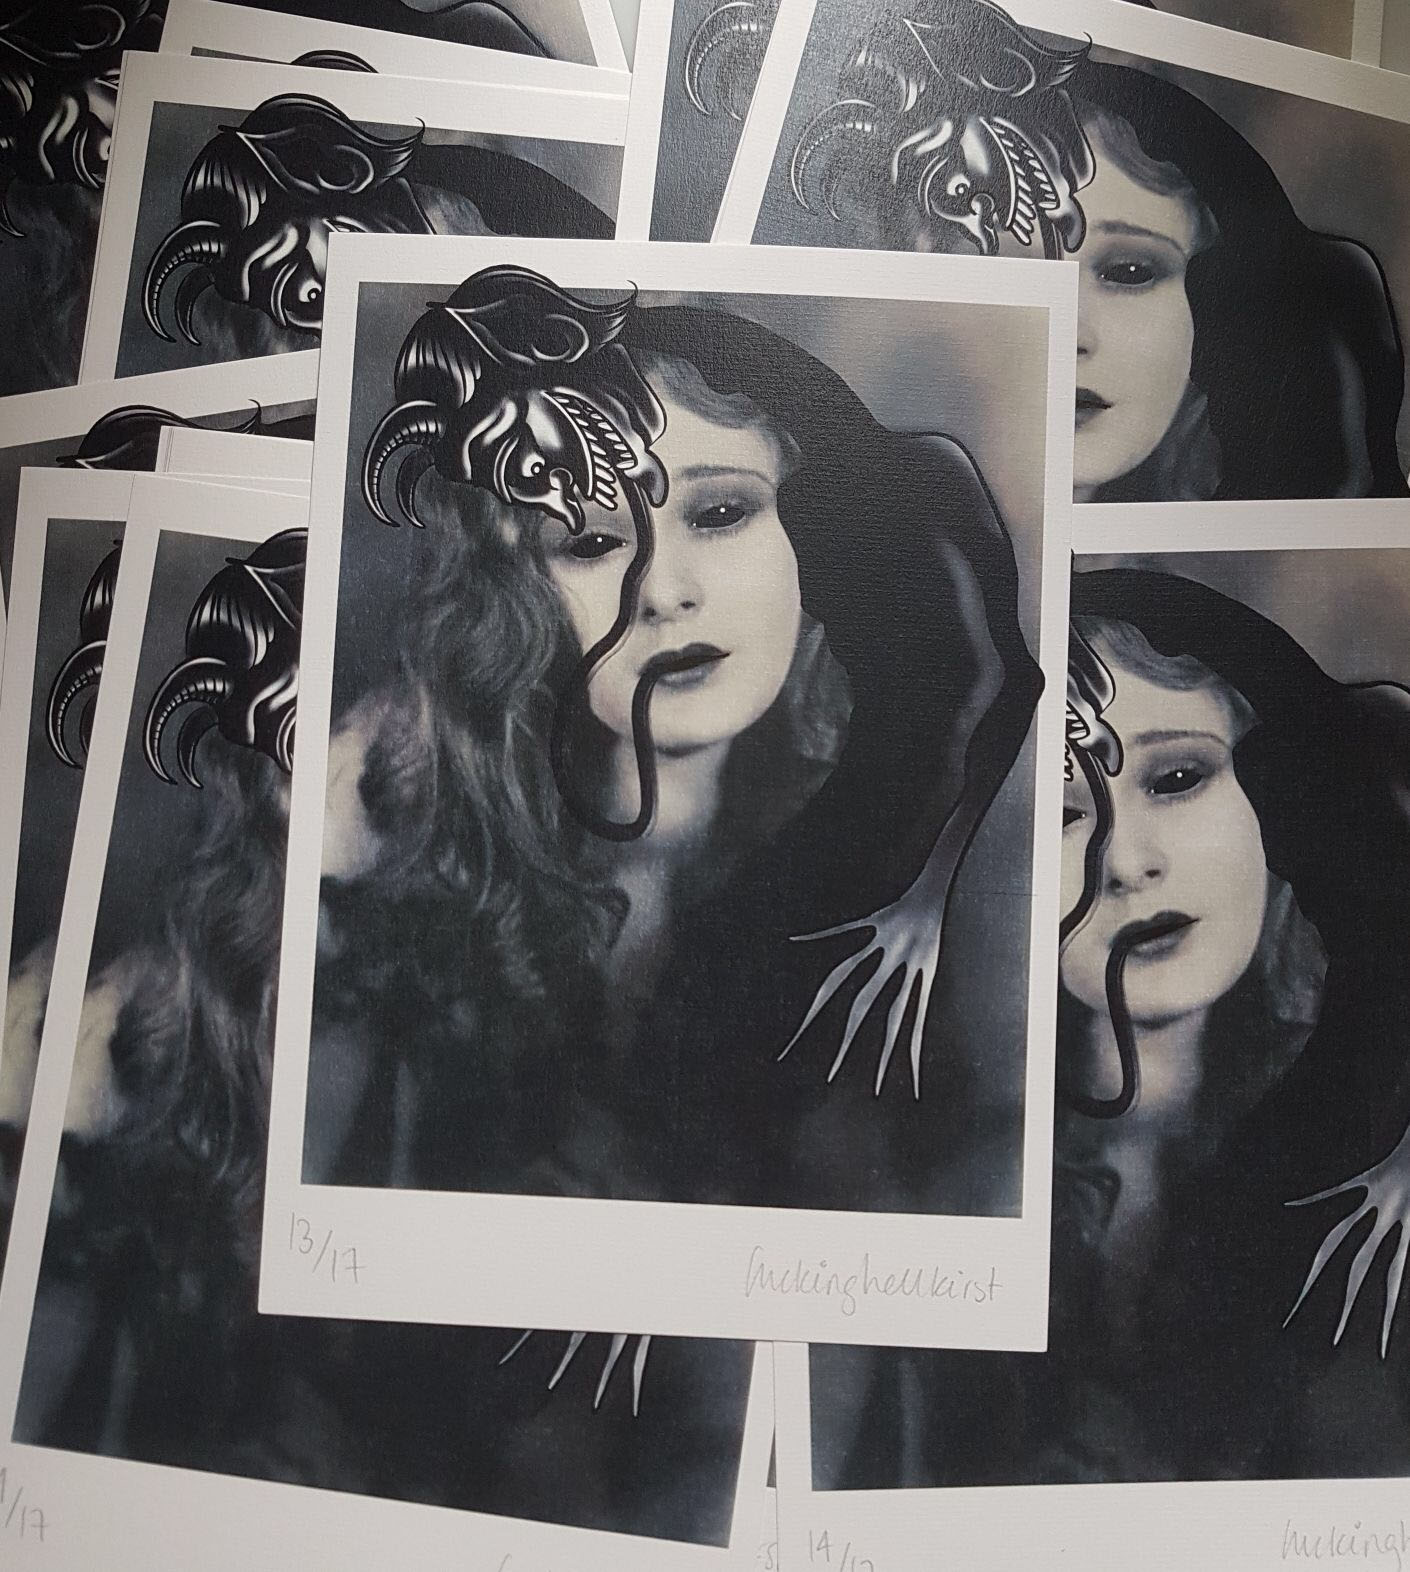 High quality A4 signed and numbered prints by Kirsty Simpson